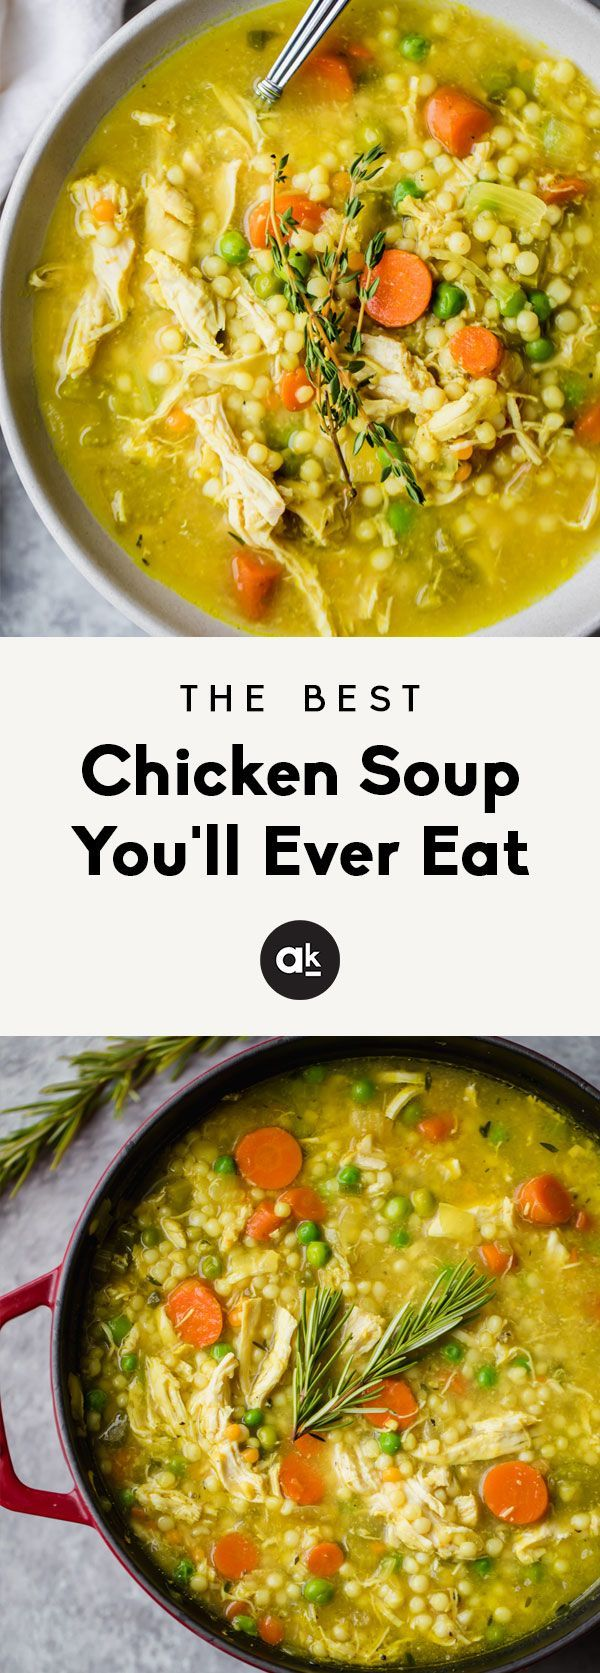 The Best Chicken Soup You'll Ever Eat #essentrinken